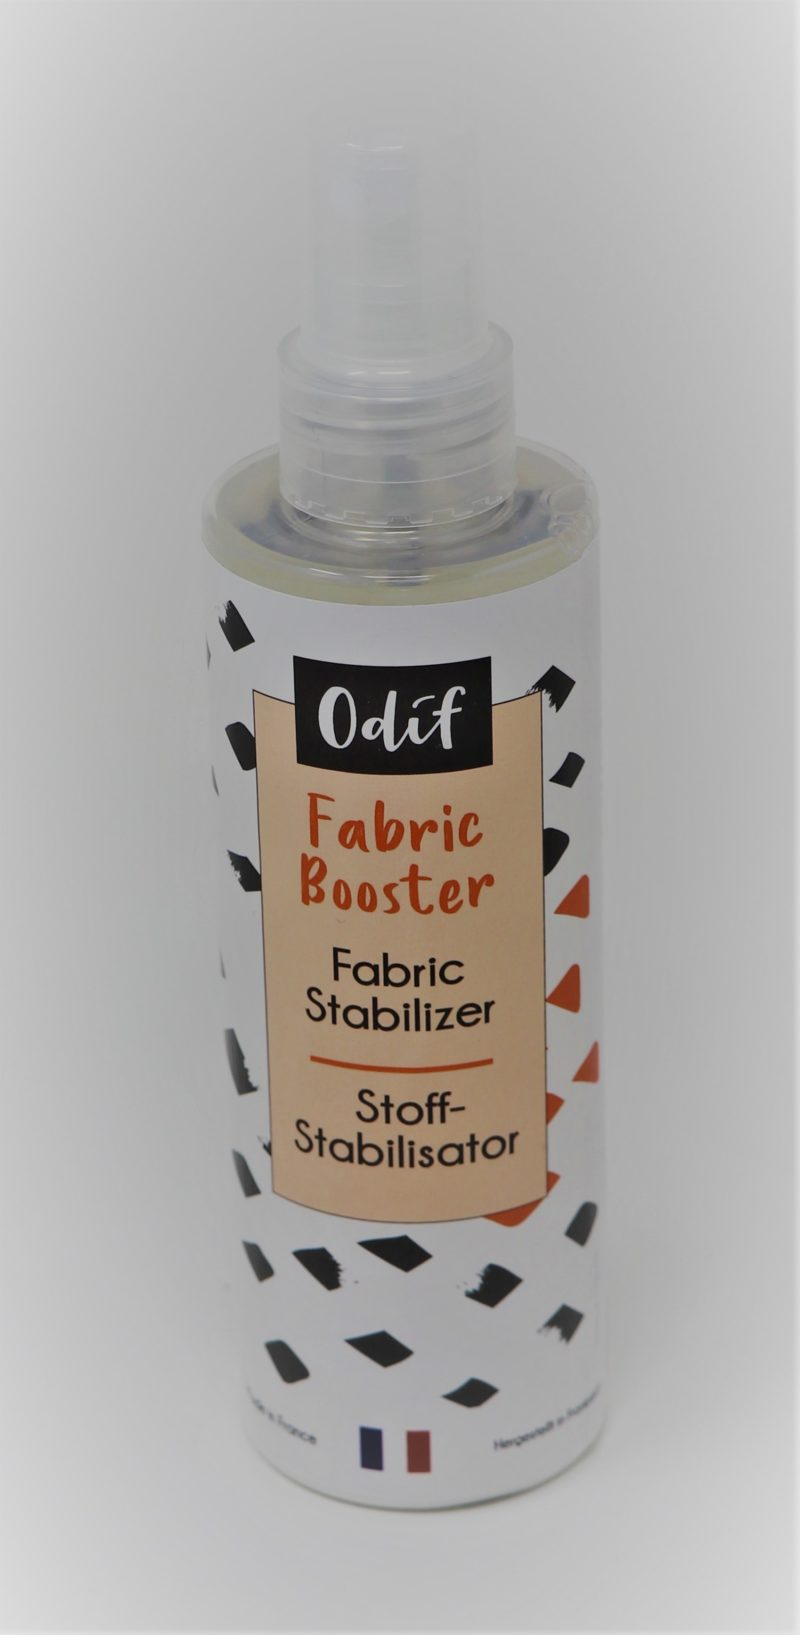 Odif Fabric Booster